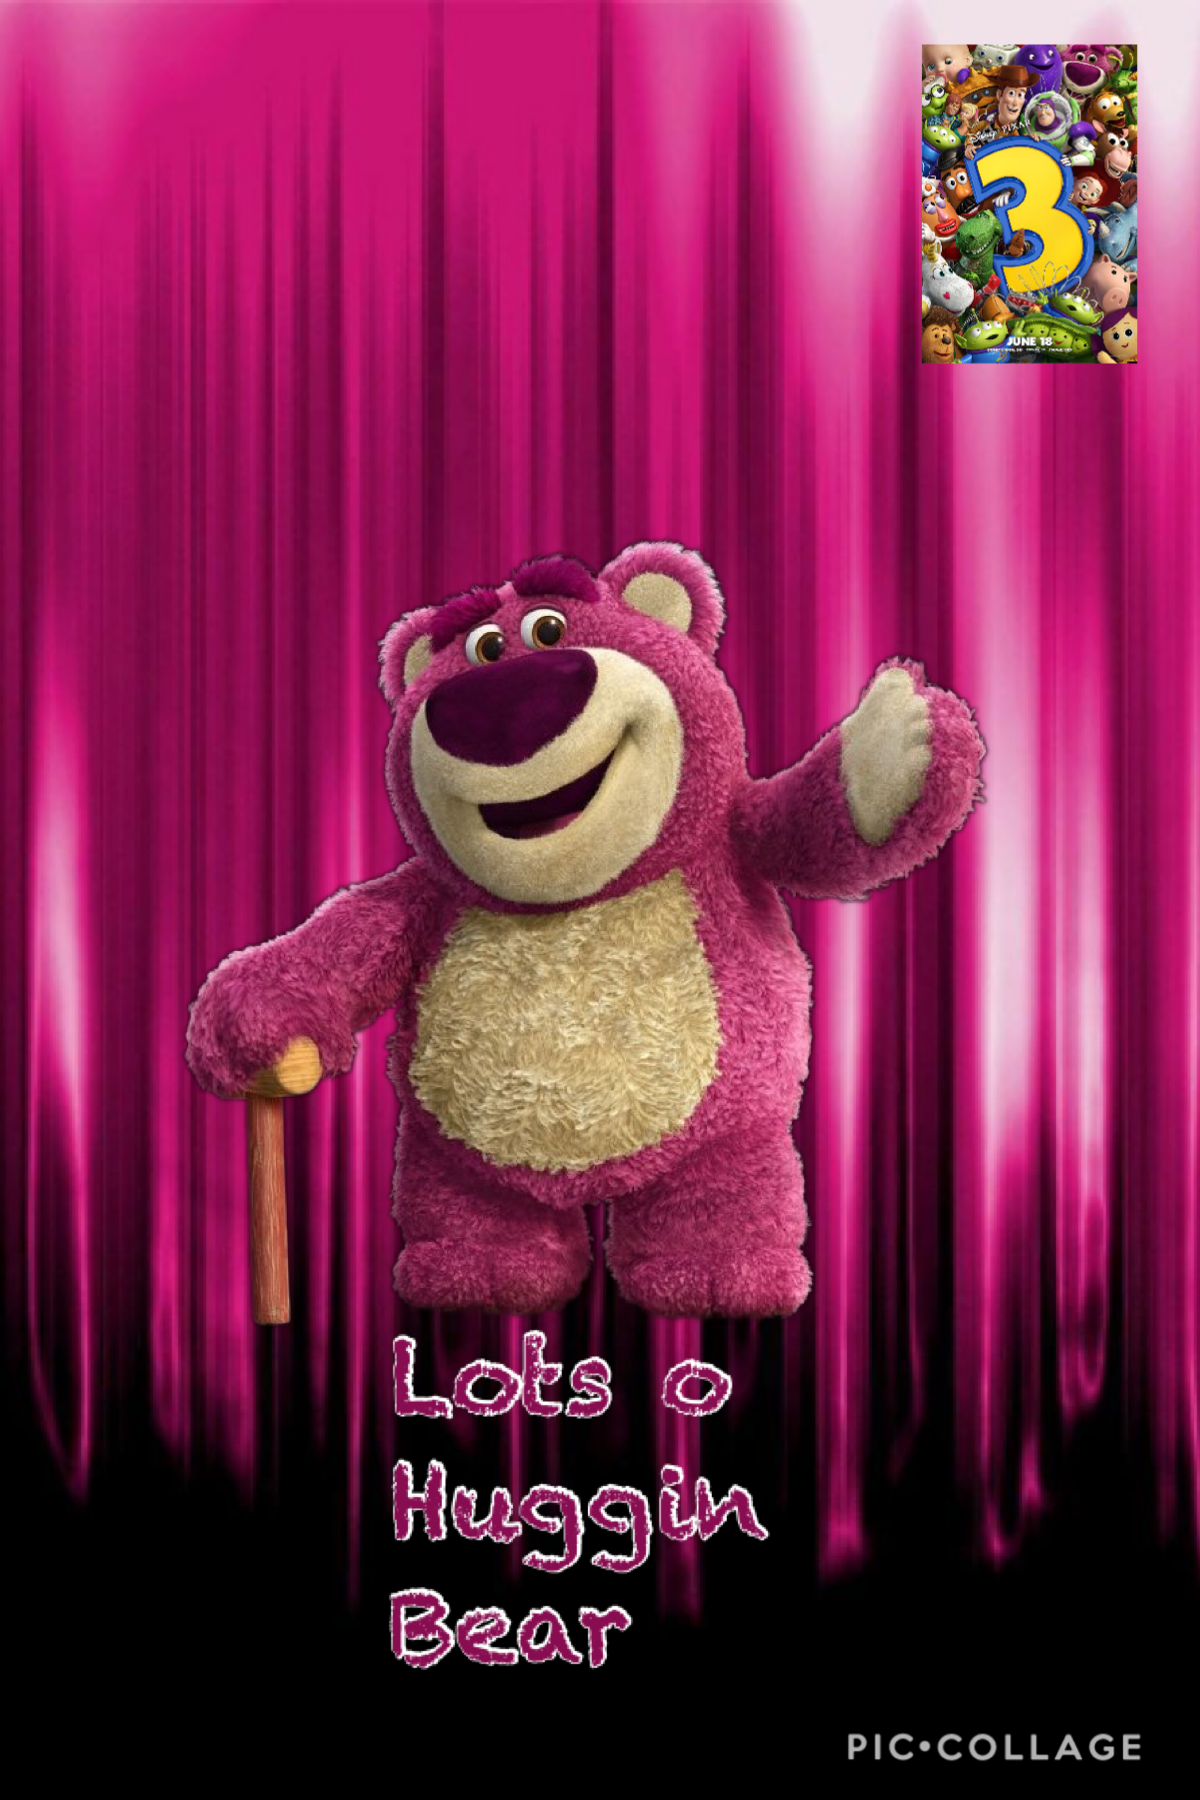 Today's Disney character of the day is lots o hugging bear